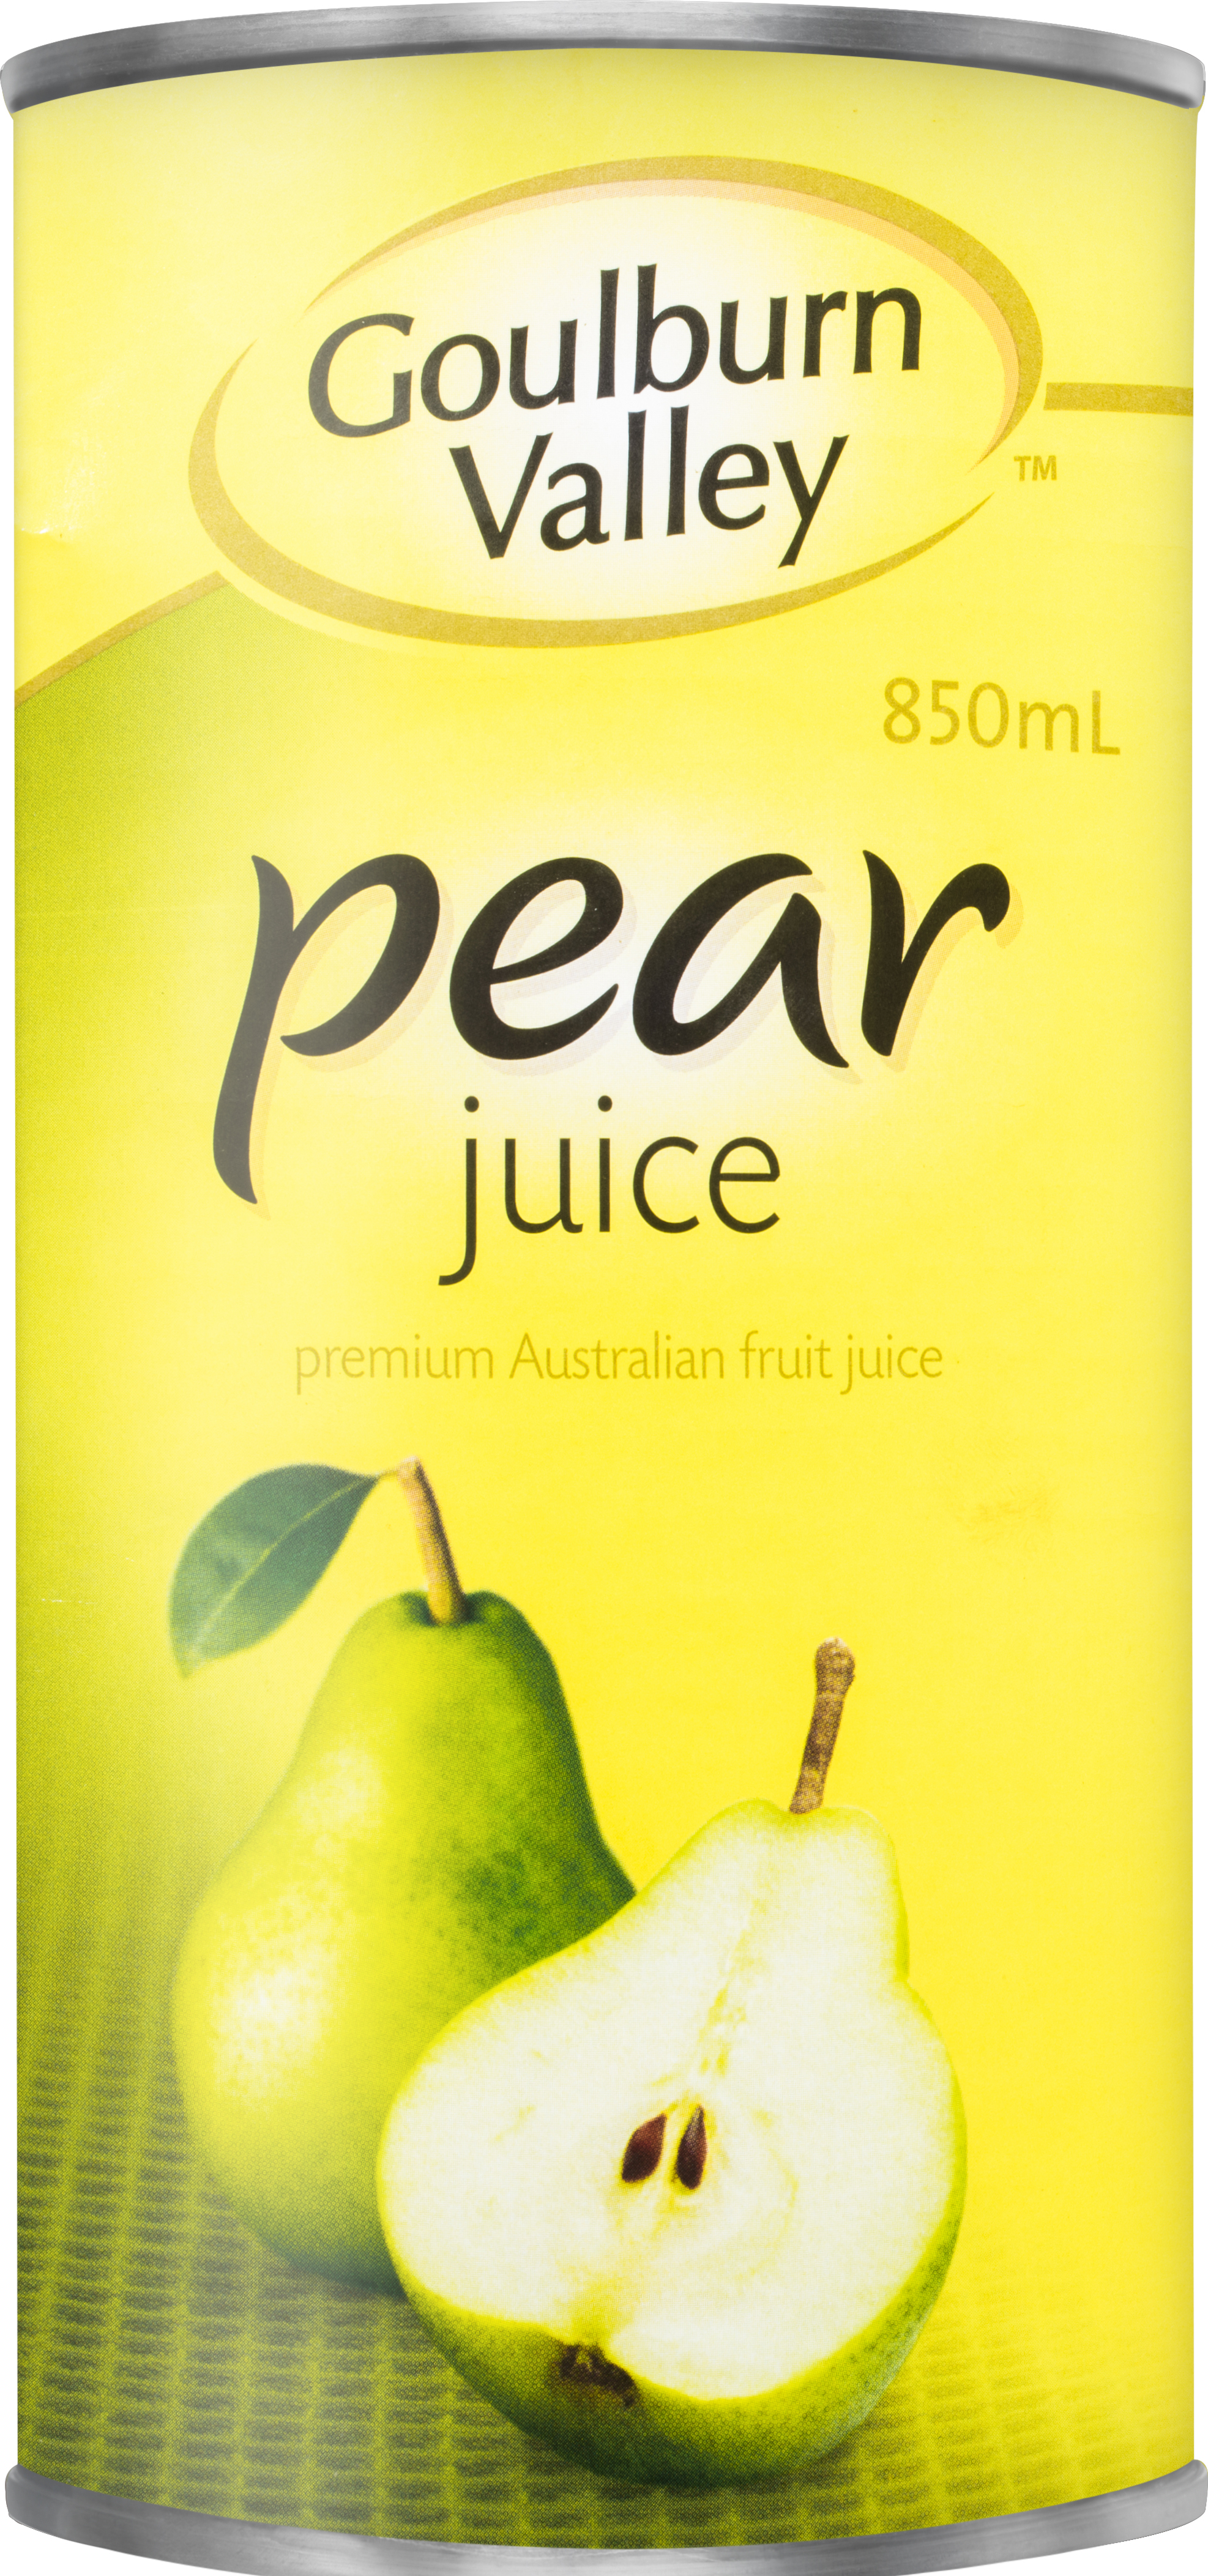 Goulburn Valley Pear Juice 850mL